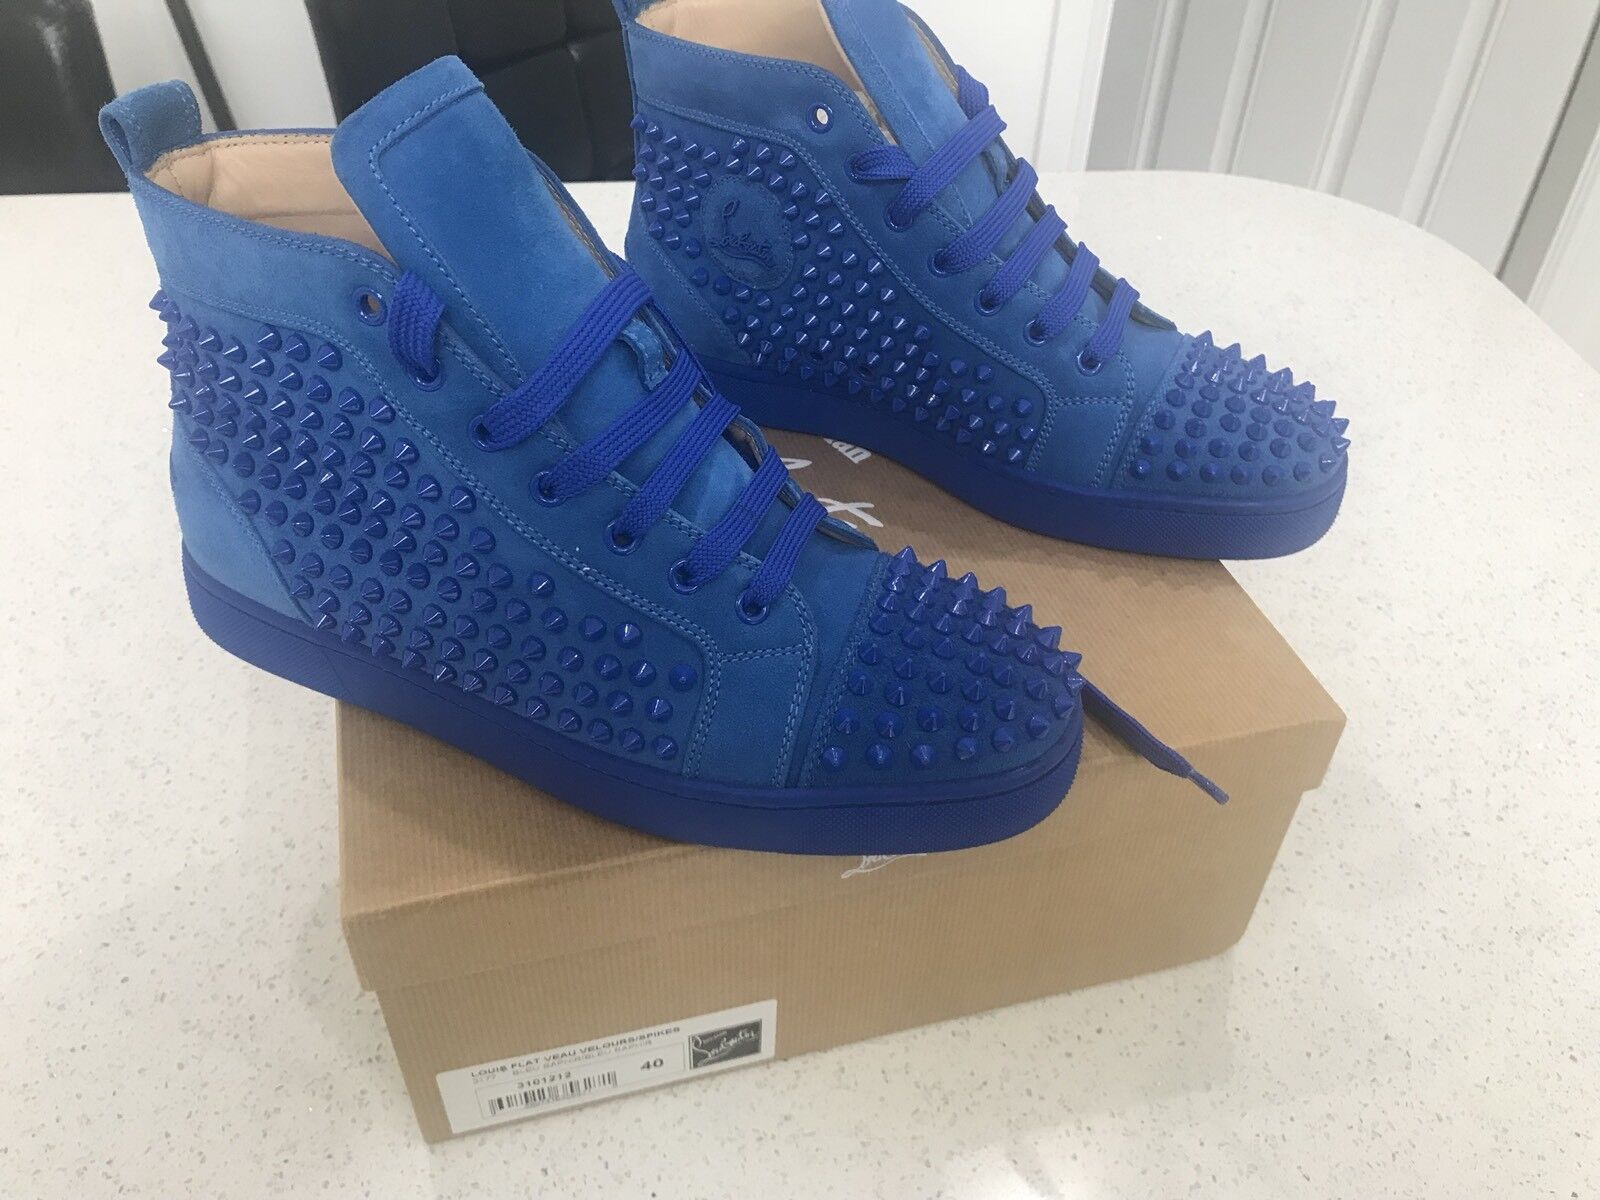 Extremely Rare Men's Christian Louboutins  Smurfs. Size 40. Immaculate Condition